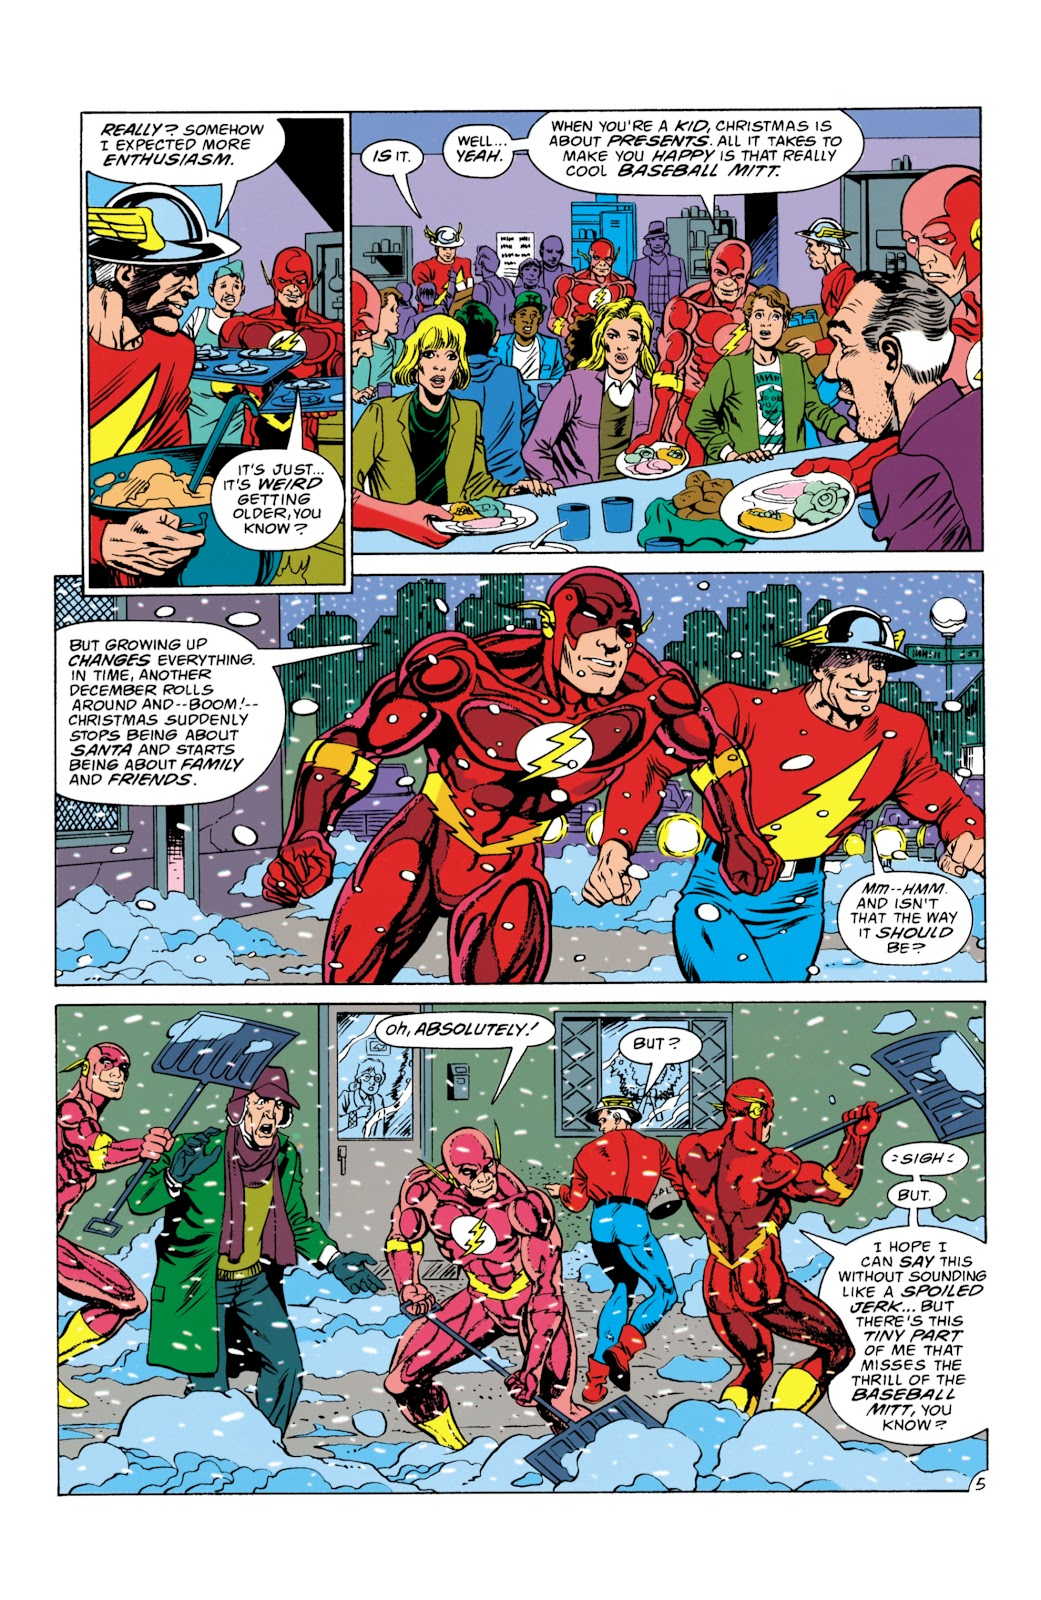 In the 'Flash #73' titled 'The Perfect Gift' (1992), The Flash (Wally West) and The Flash (Jay Garrick) do some super heroics on Christmas Eve around Central City.